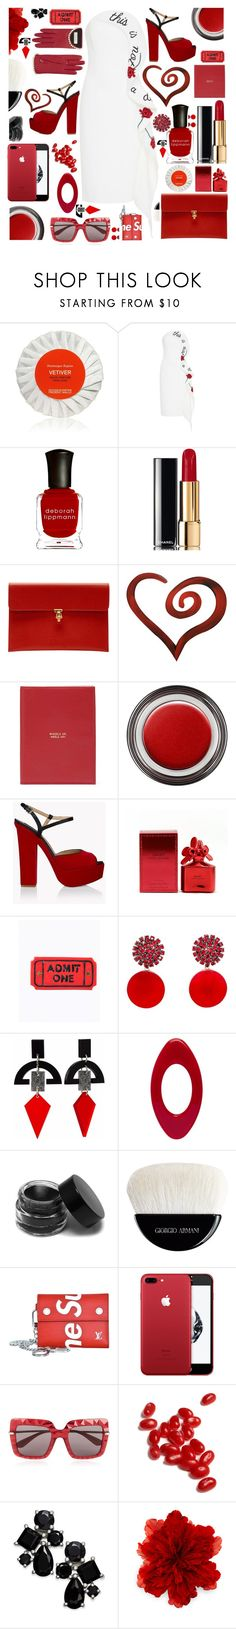 """Gratitude"" by sunnydays4everkh ❤ liked on Polyvore featuring Frédéric Malle, Elizabeth Kennedy, Deborah Lippmann, Chanel, Alexander McQueen, Letter2Word, Thacker, John Lewis, Dsquared2 and Marc Jacobs"